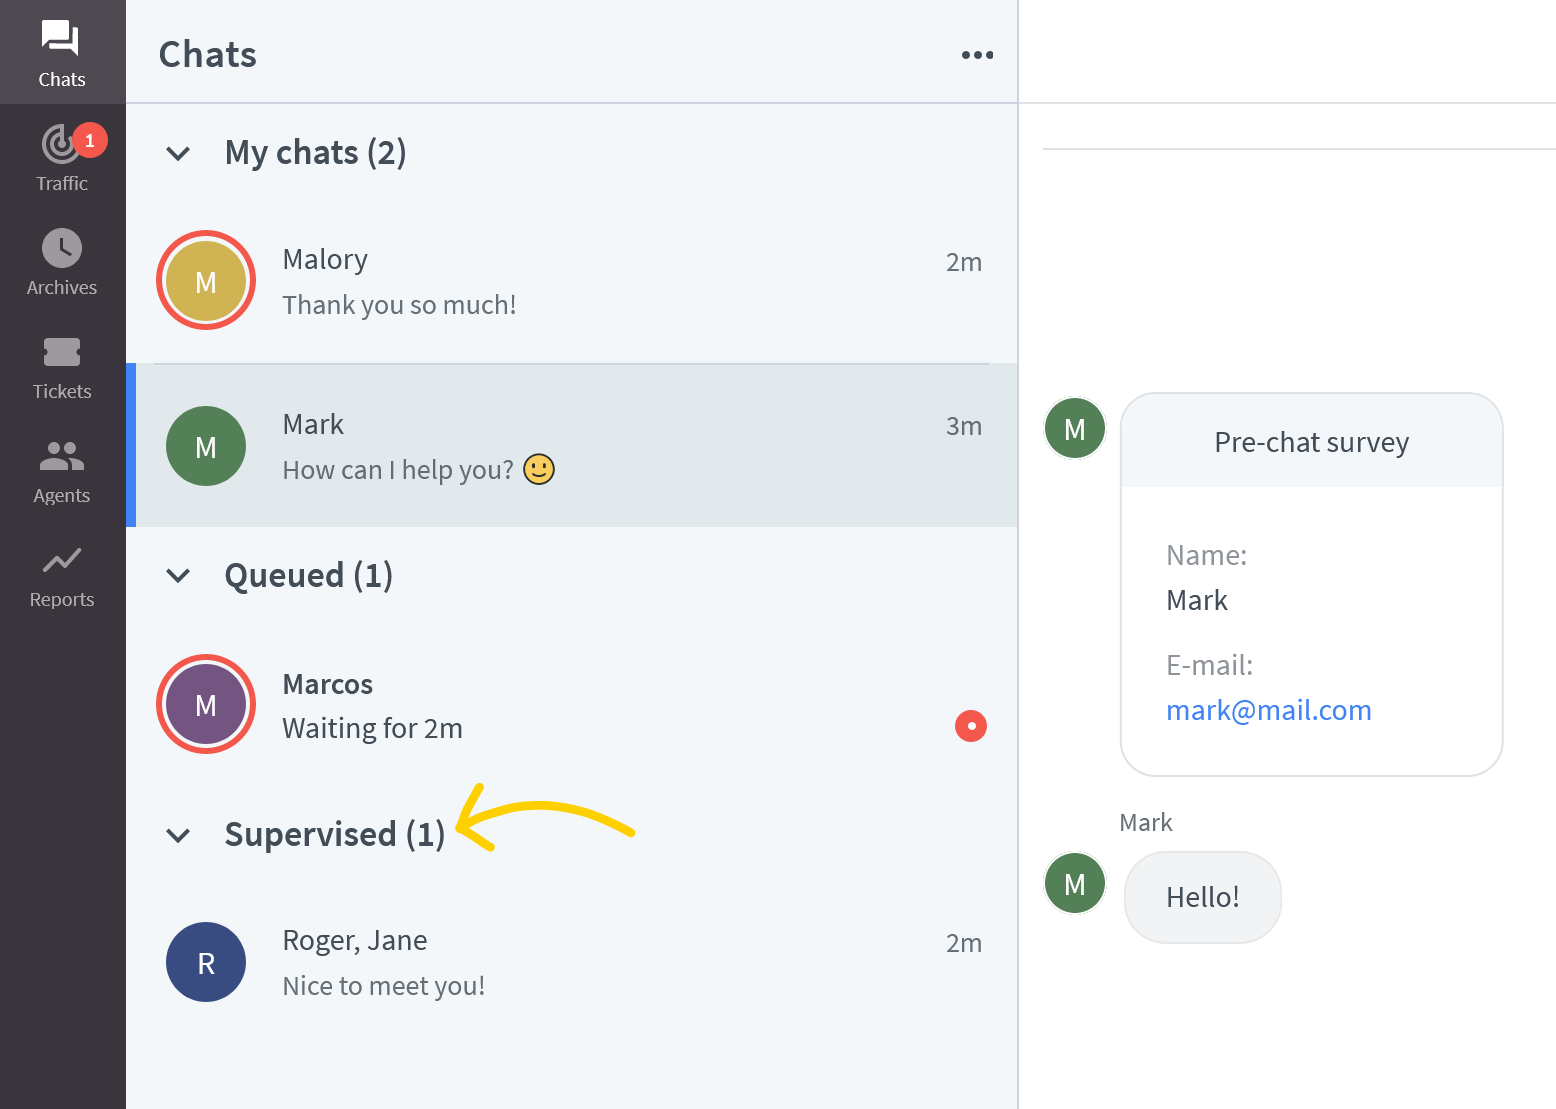 Supervised chats list